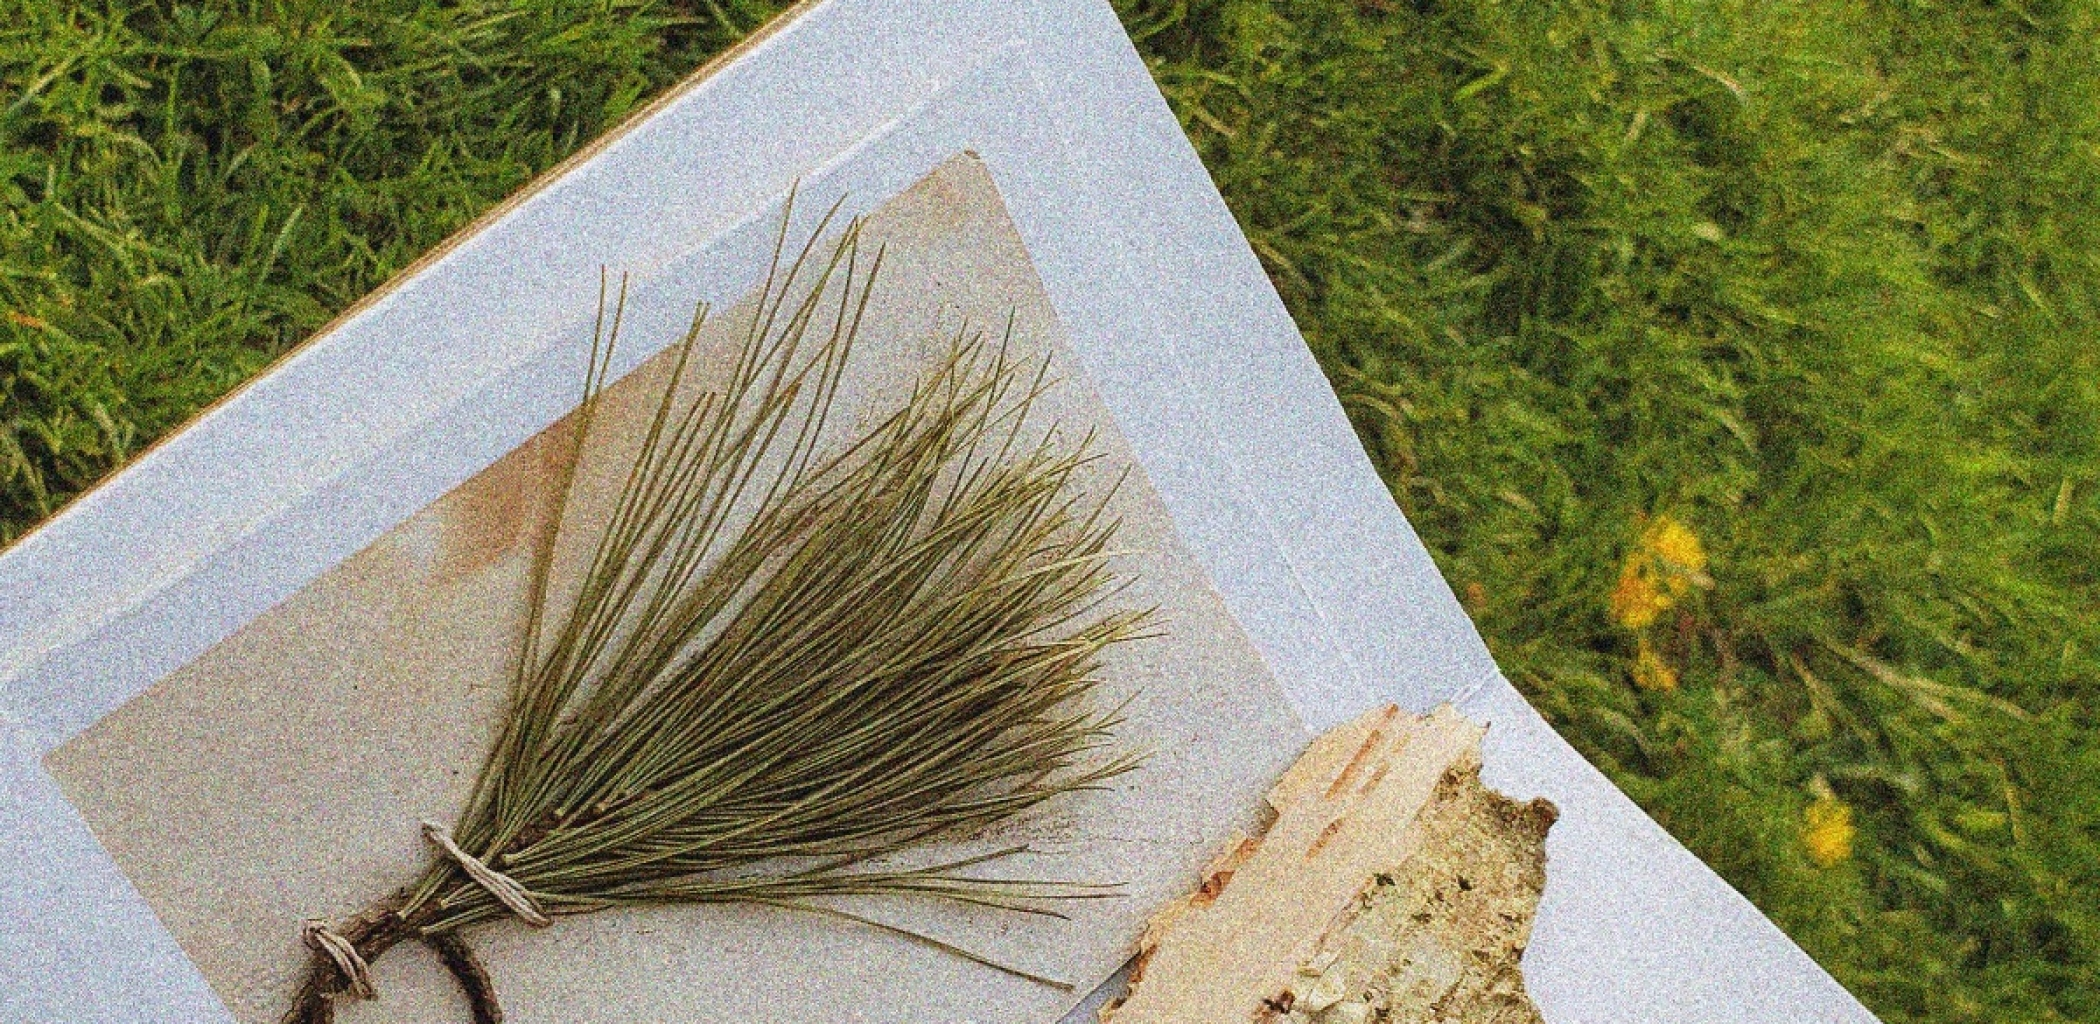 close-up photo of a handmade paper accordion book. Pine needles have been stitched into it, and a piece of birch bark sits on the page beside it.